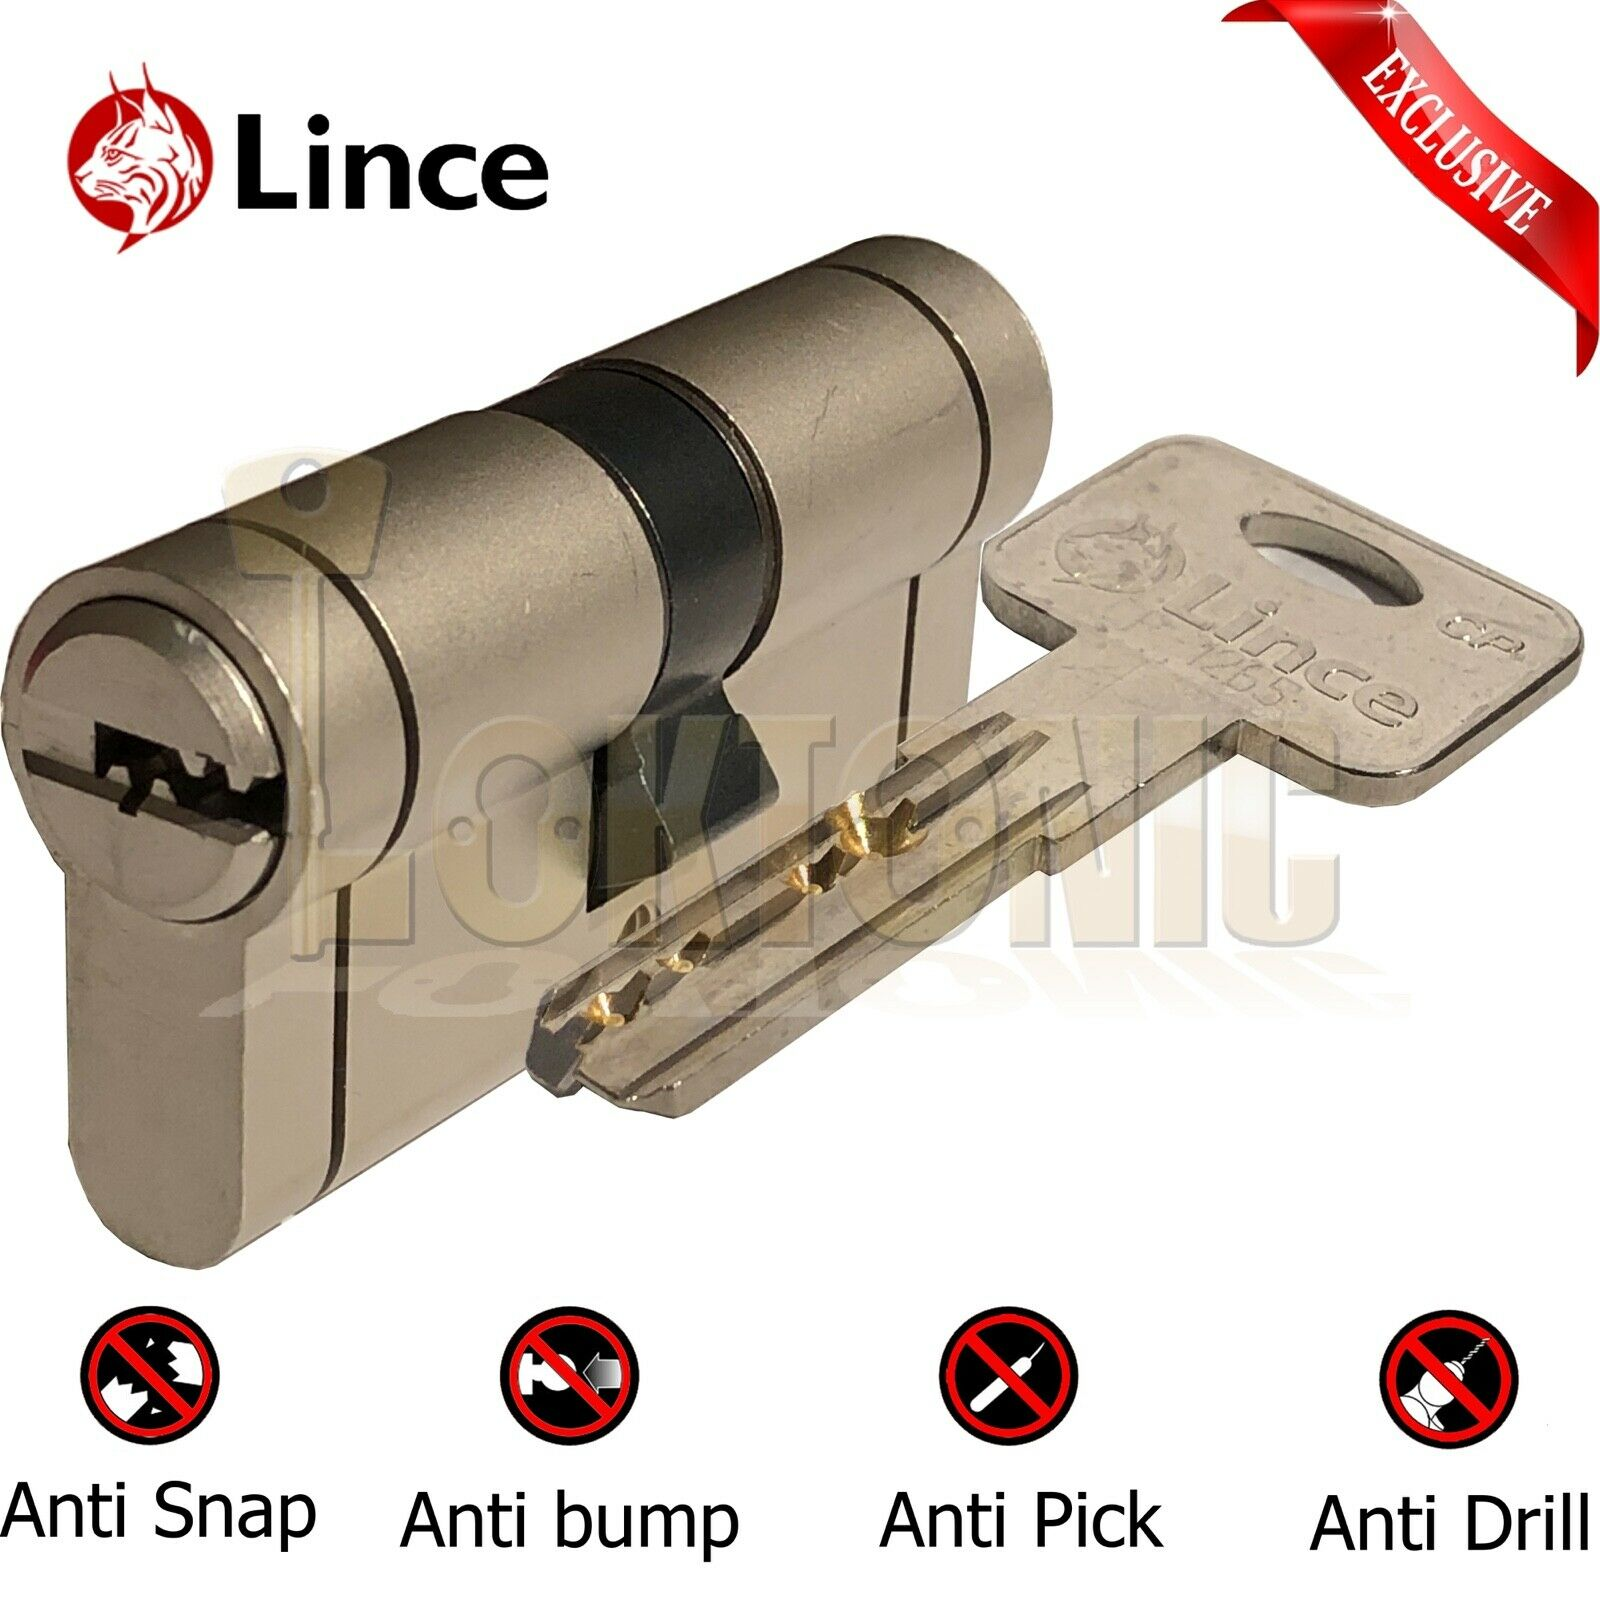 Lince High Security Euro Cylinder Composite Door Lock Anti Snap Bump Drill Pick